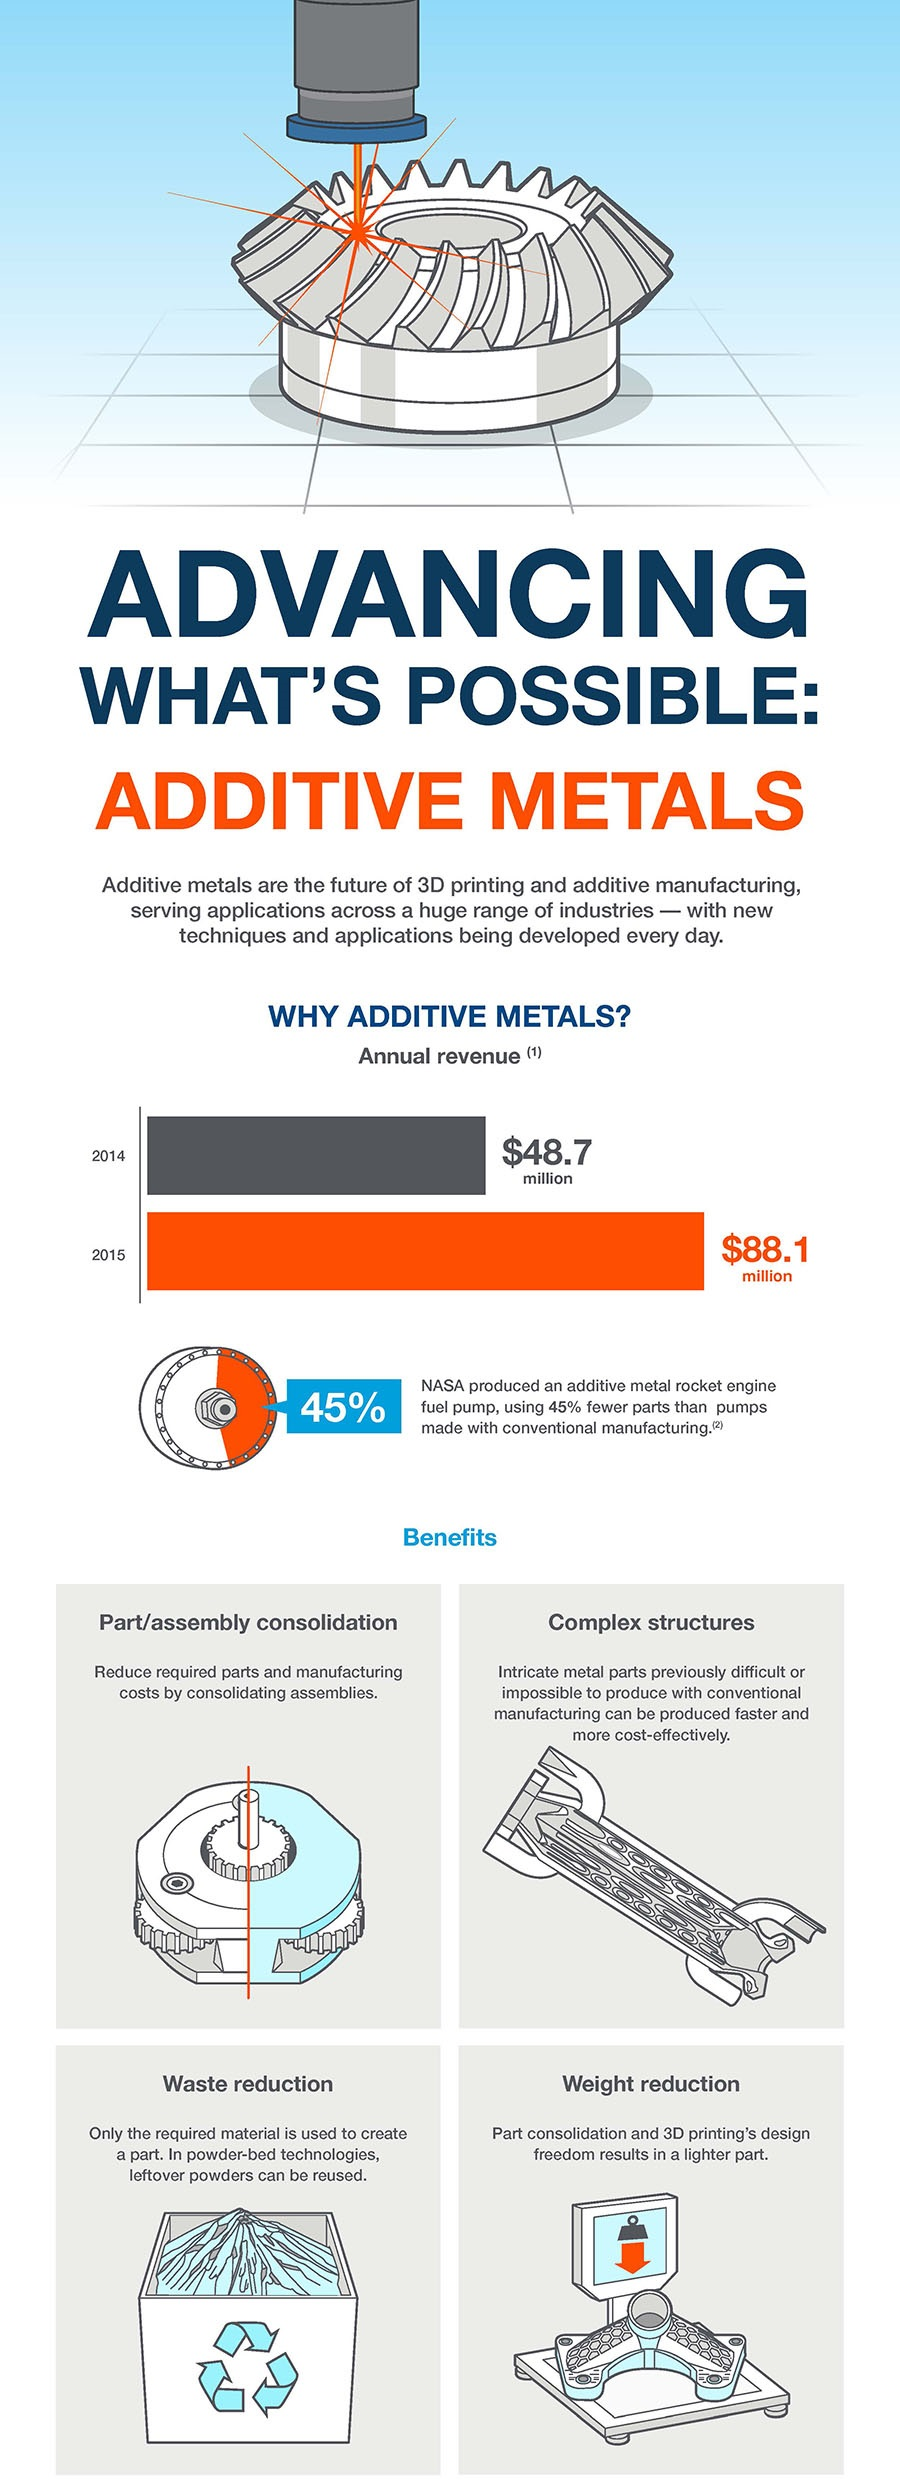 Additive Metals